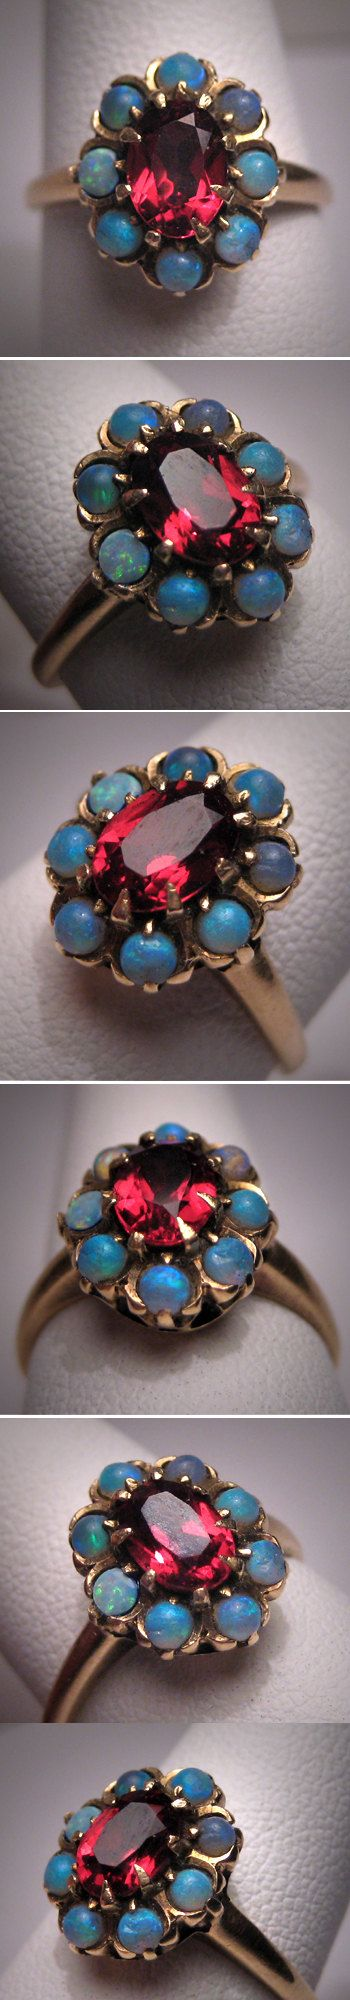 Antique Opal Garnet Ring Gold Vintage by AawsombleiJewelry on Etsy, $895.00